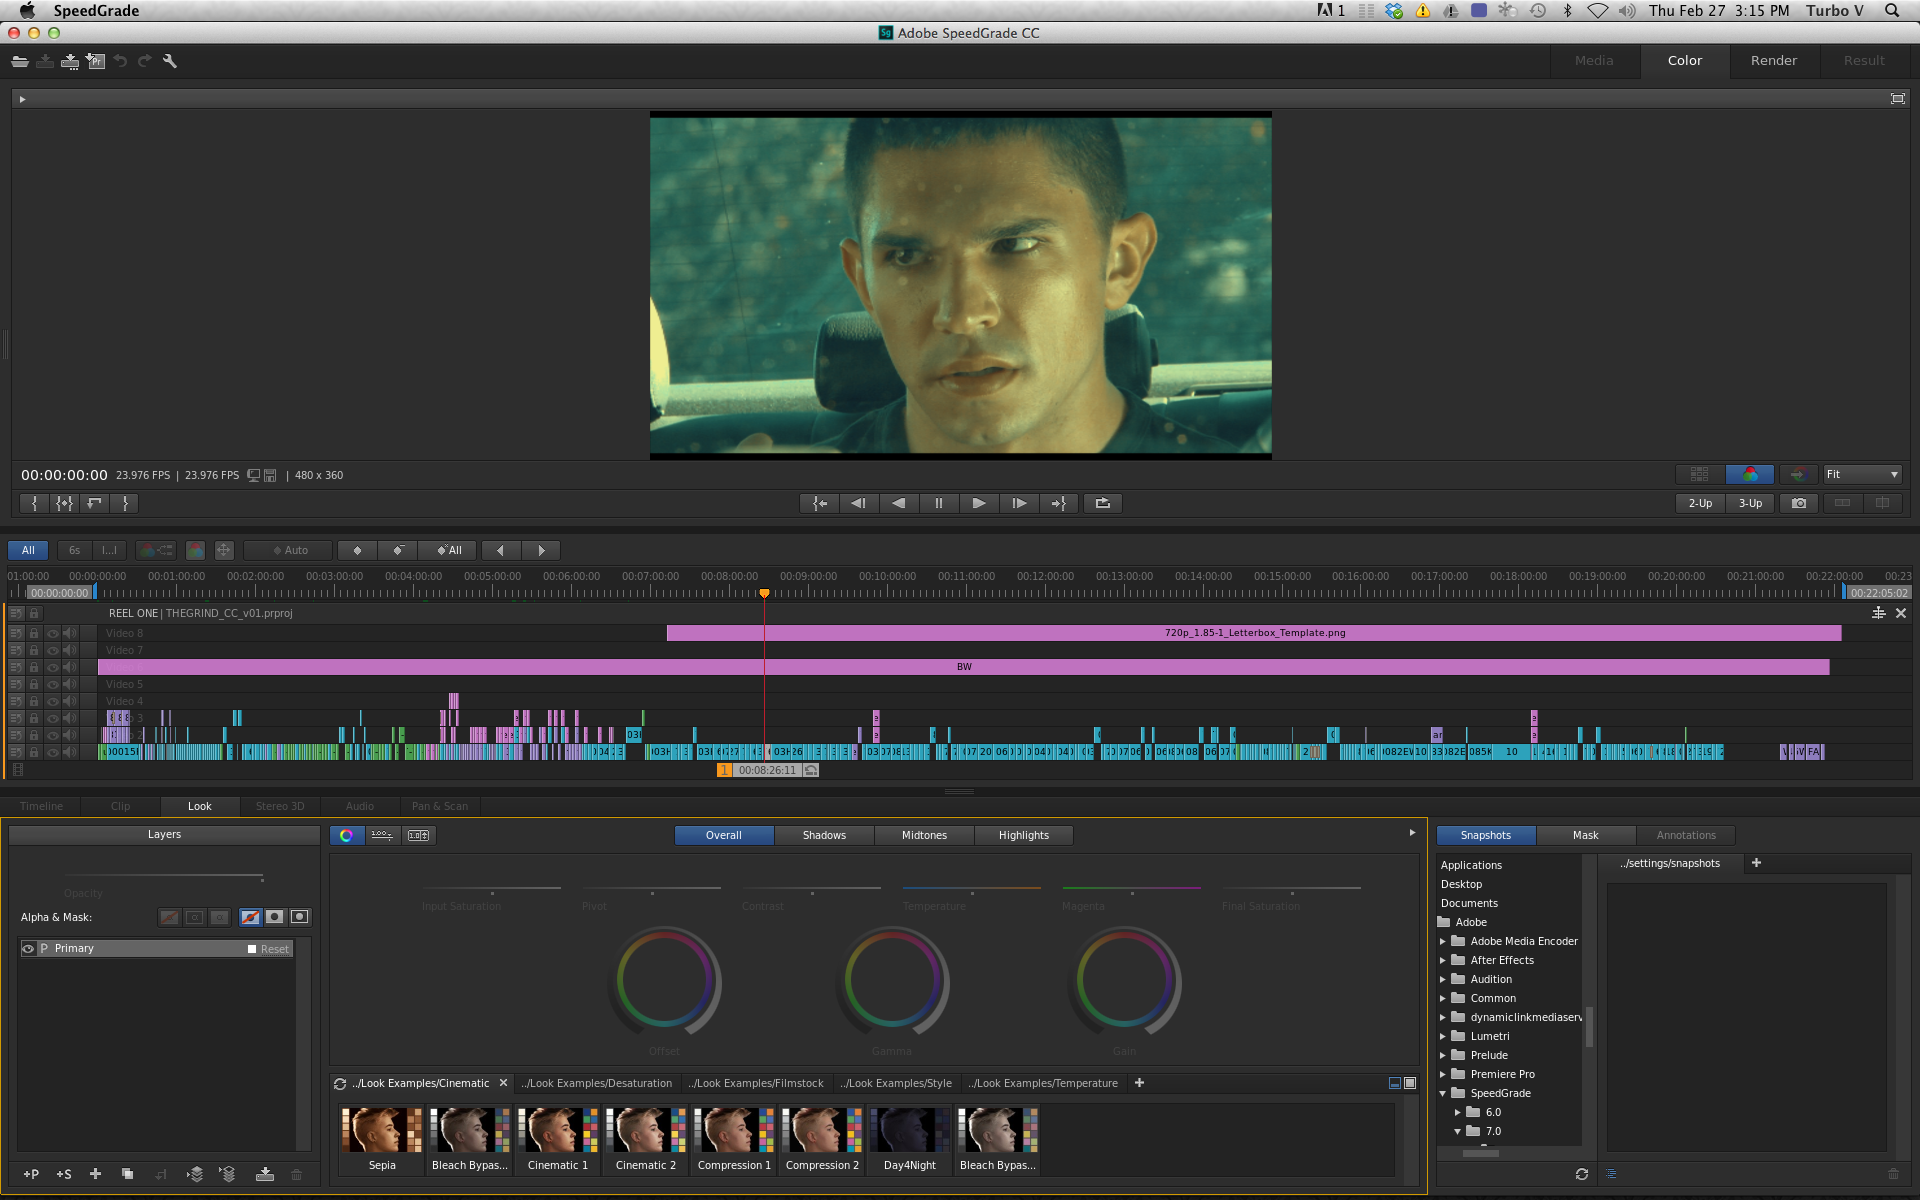 Working with LUTs in Adobe SpeedGrade CC